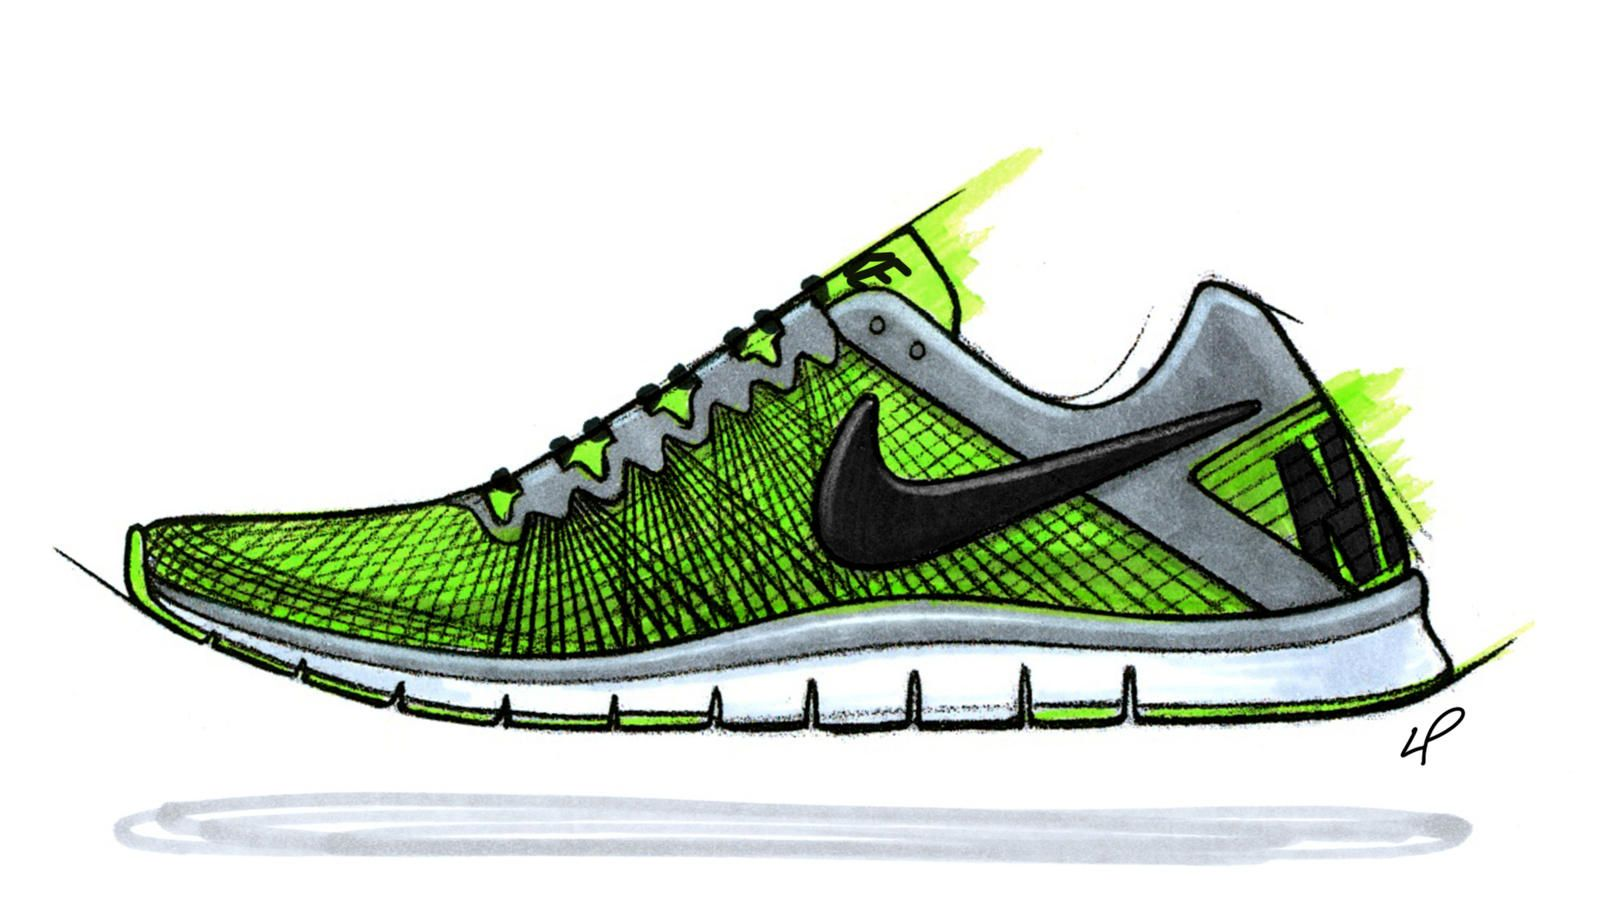 Nike's most advanced men's training shoe is ultra-lightweight, breathable  and flexible, designed